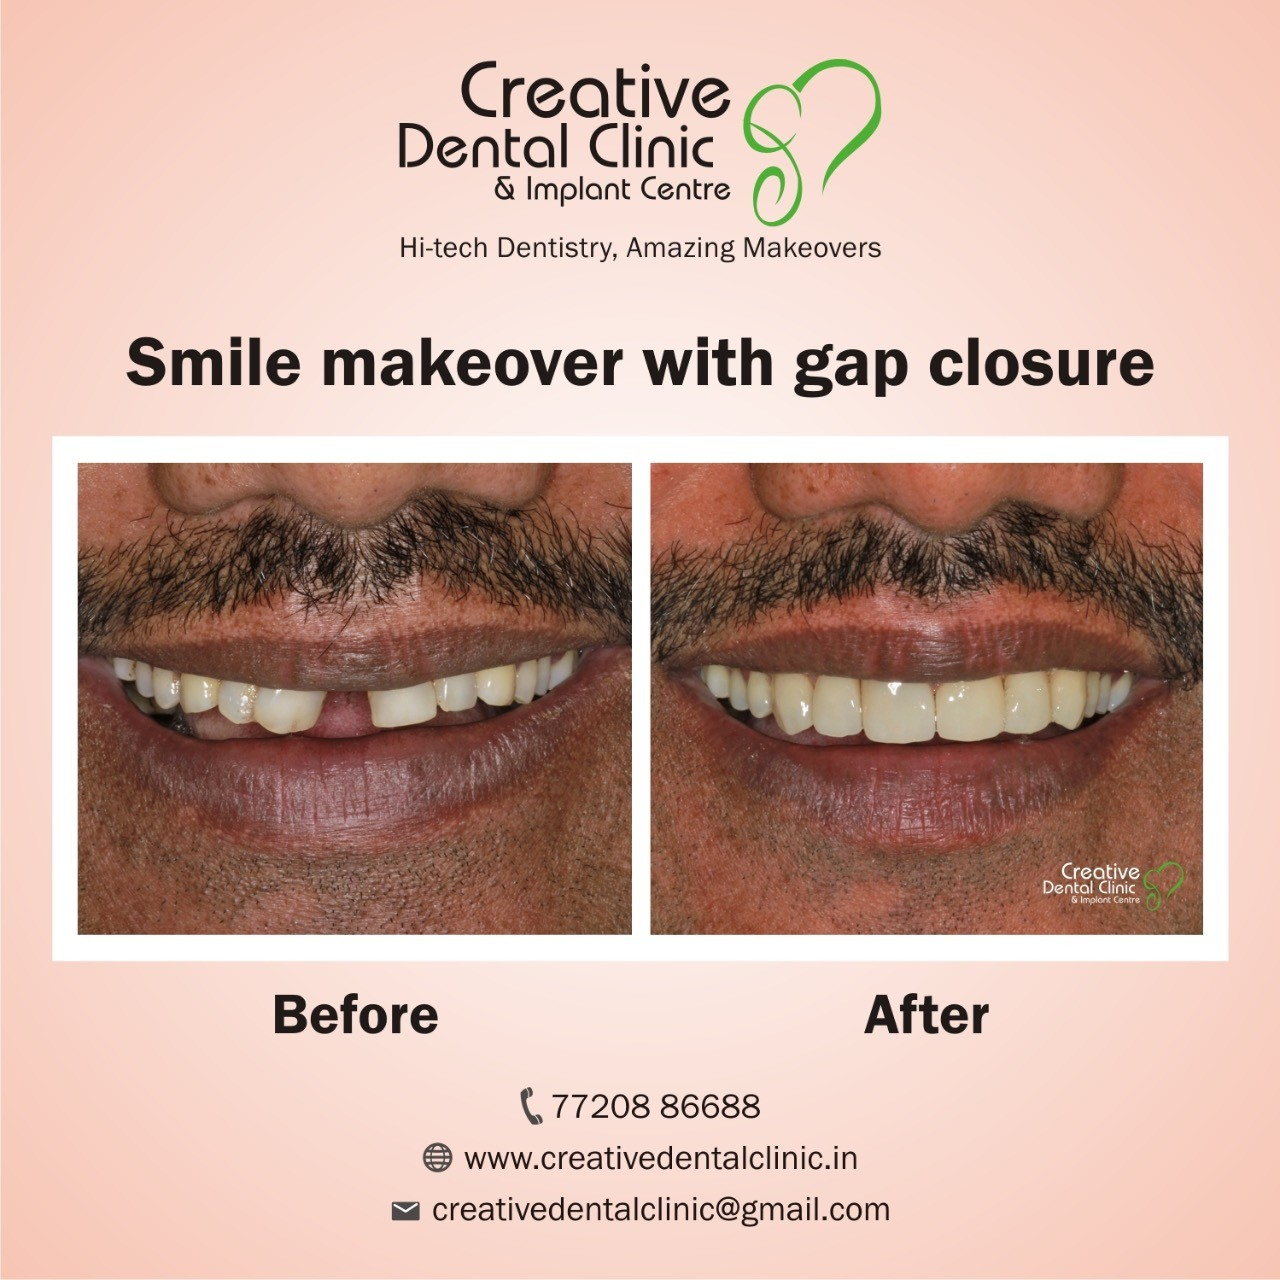 Creative Dental Clinic & Implant Centre